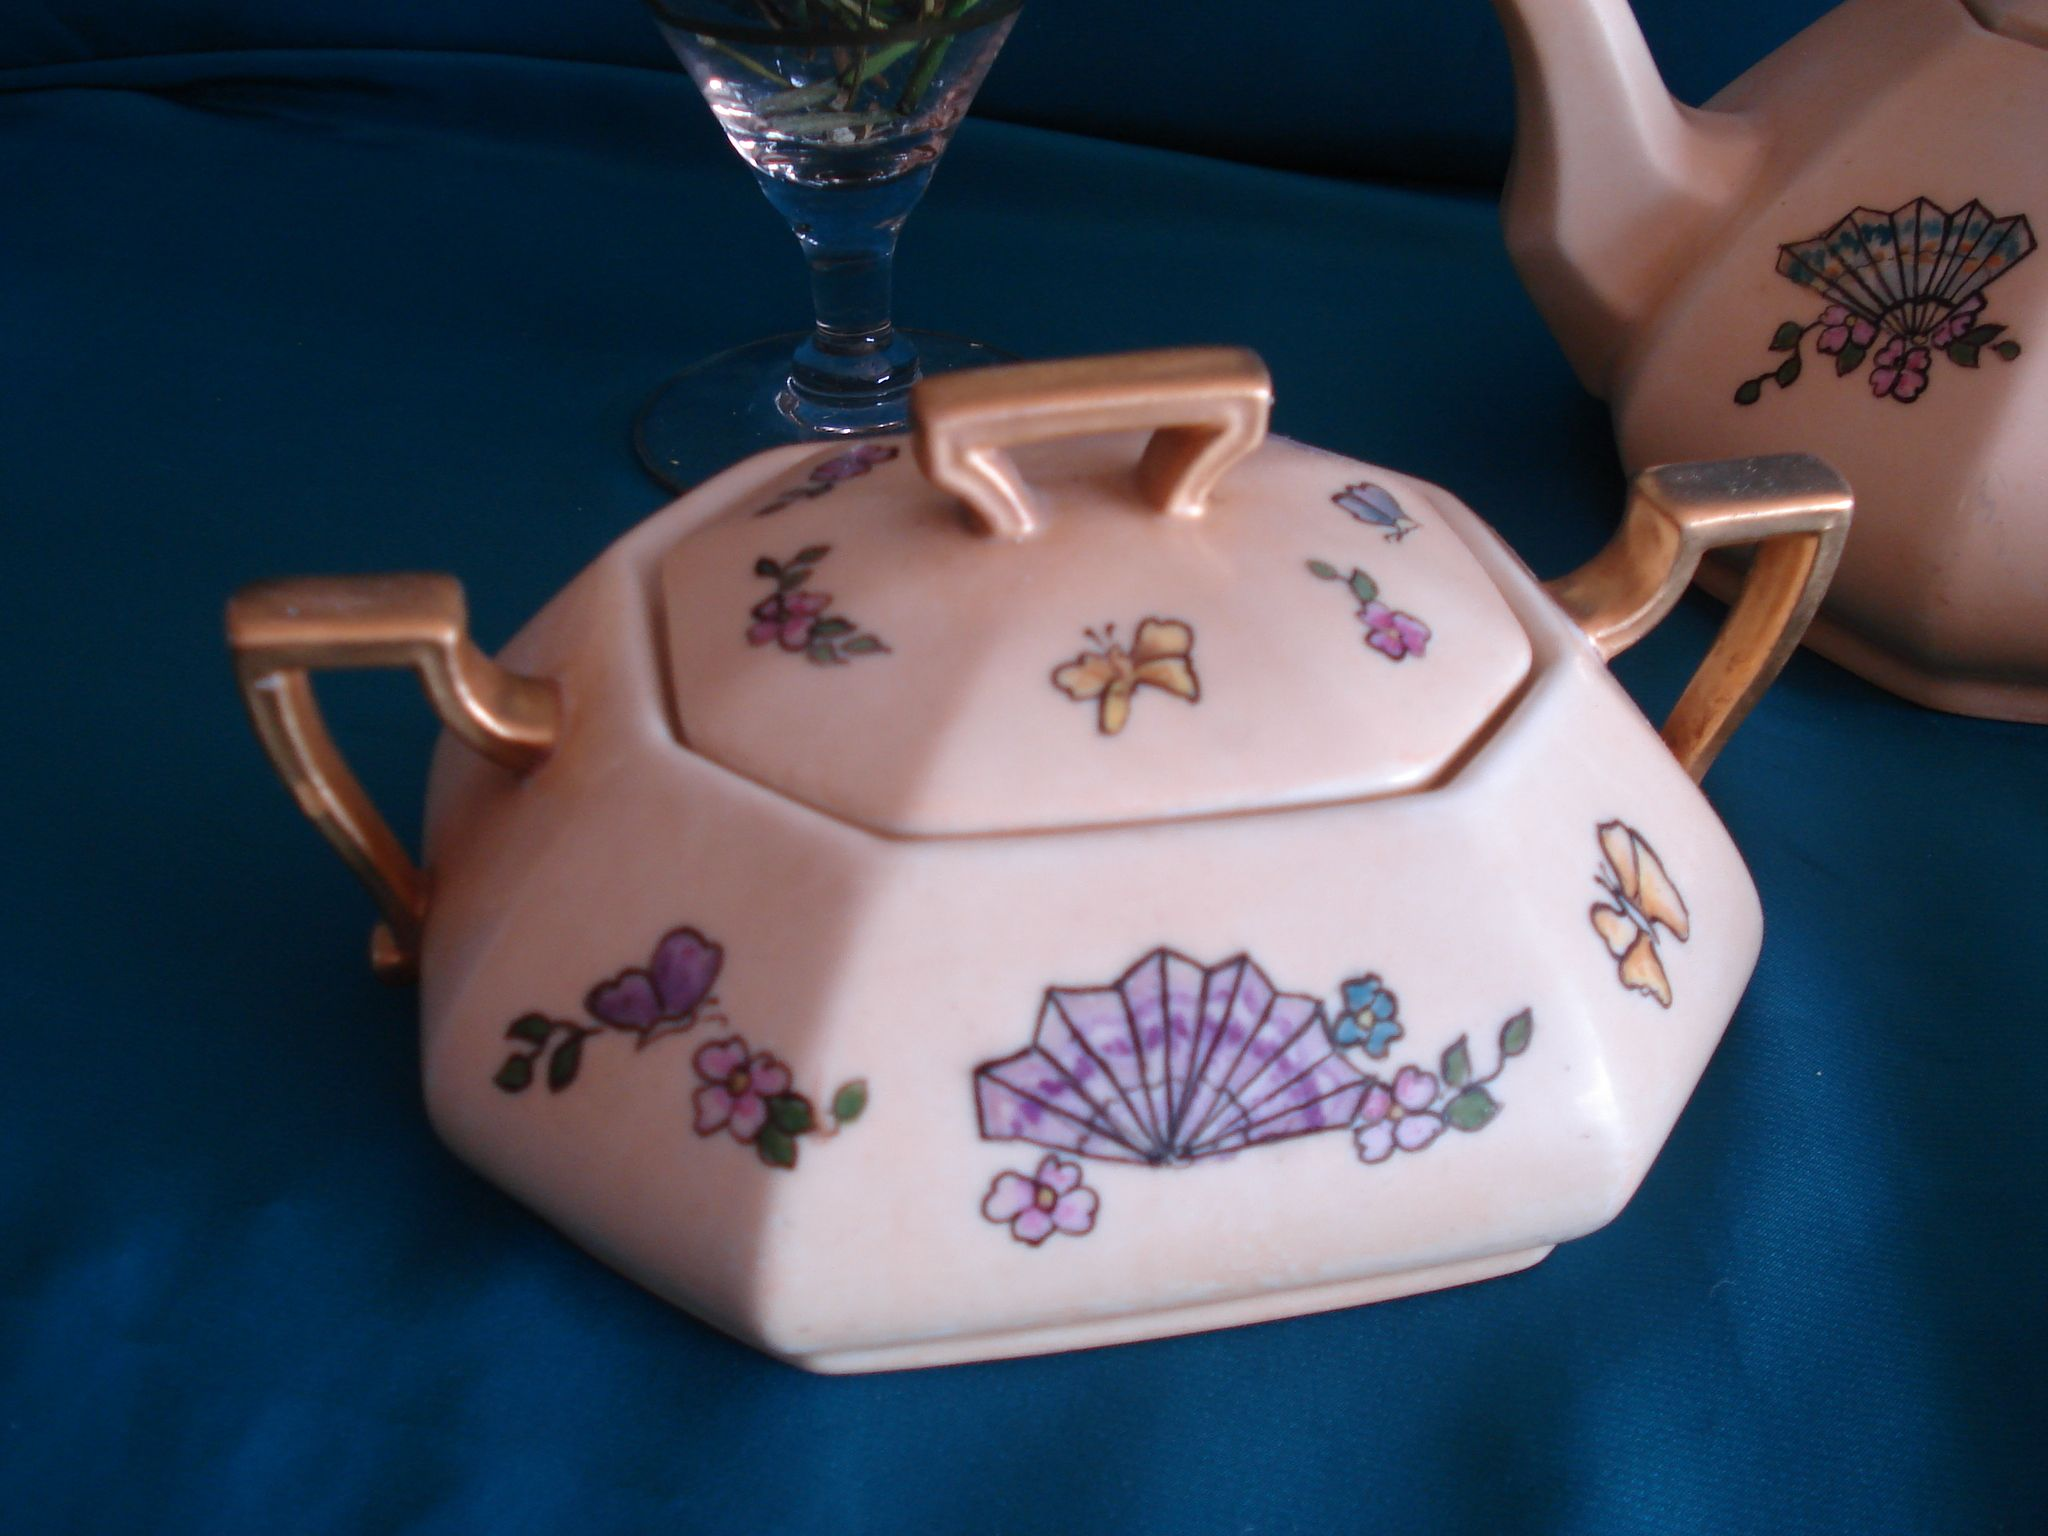 Azucarera Art Deco Limoges Hand Painted  Inf- 15-30144082 mailto:retroteaan... Face; Retrotea andcoffee